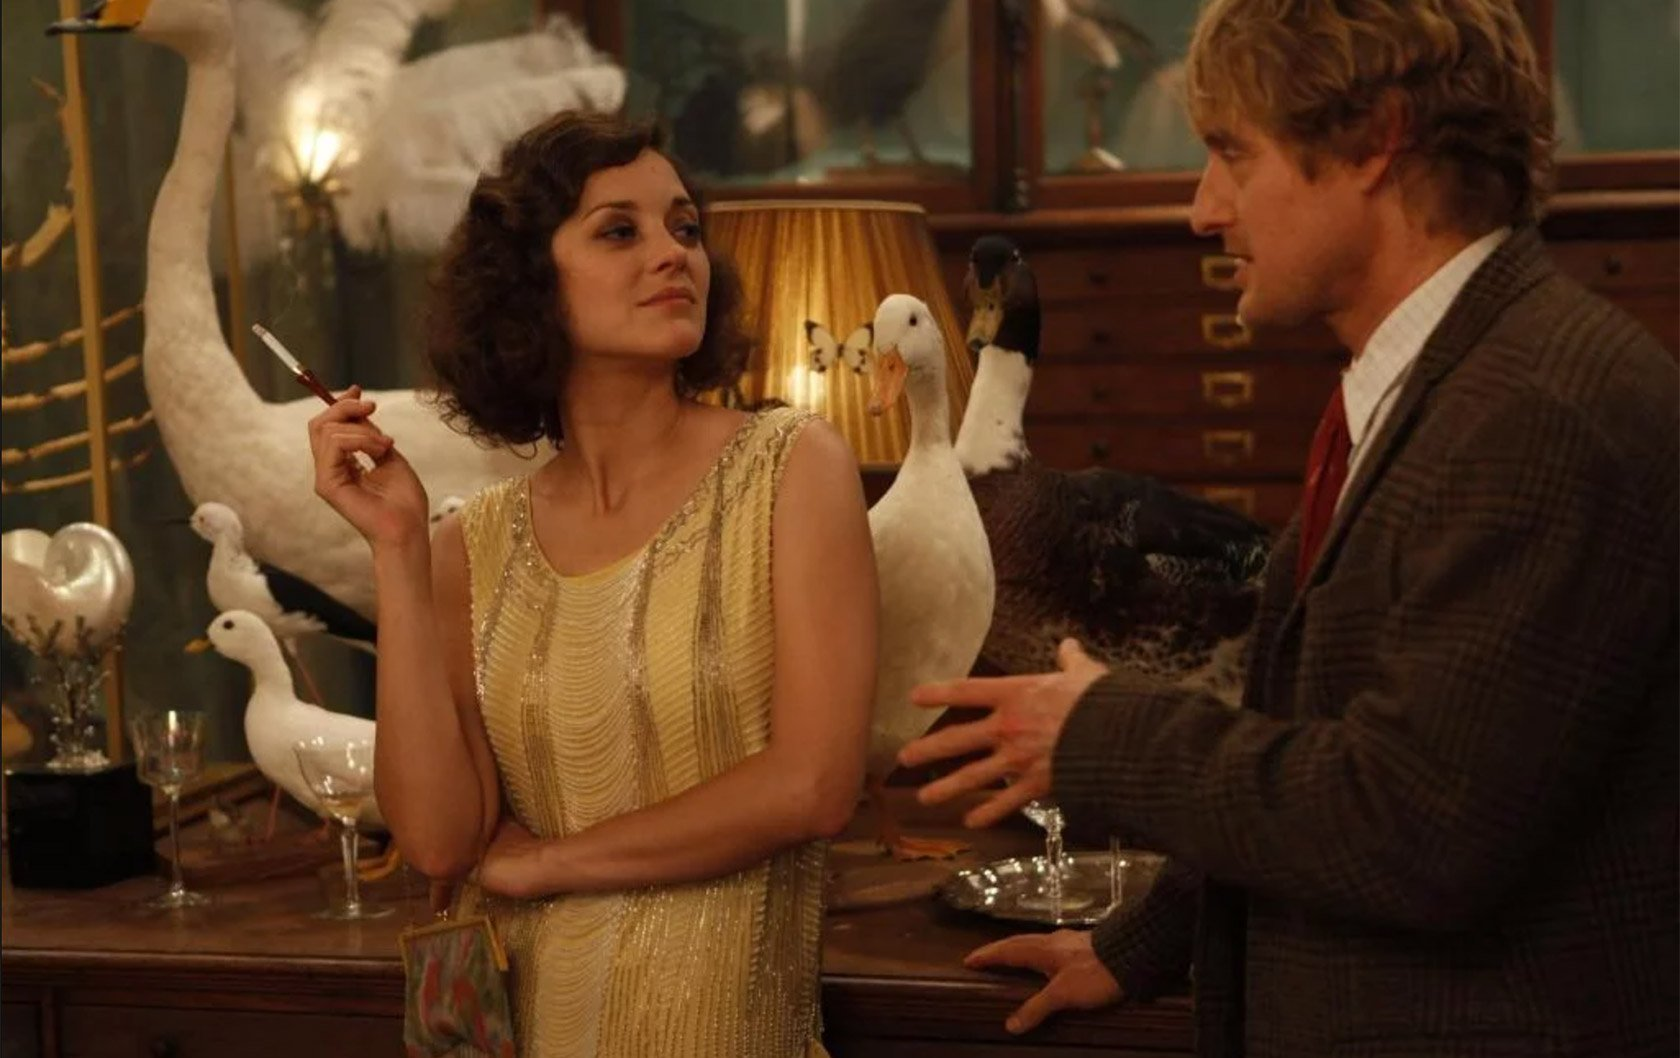 midnight-in-paris-deyrolle-scene